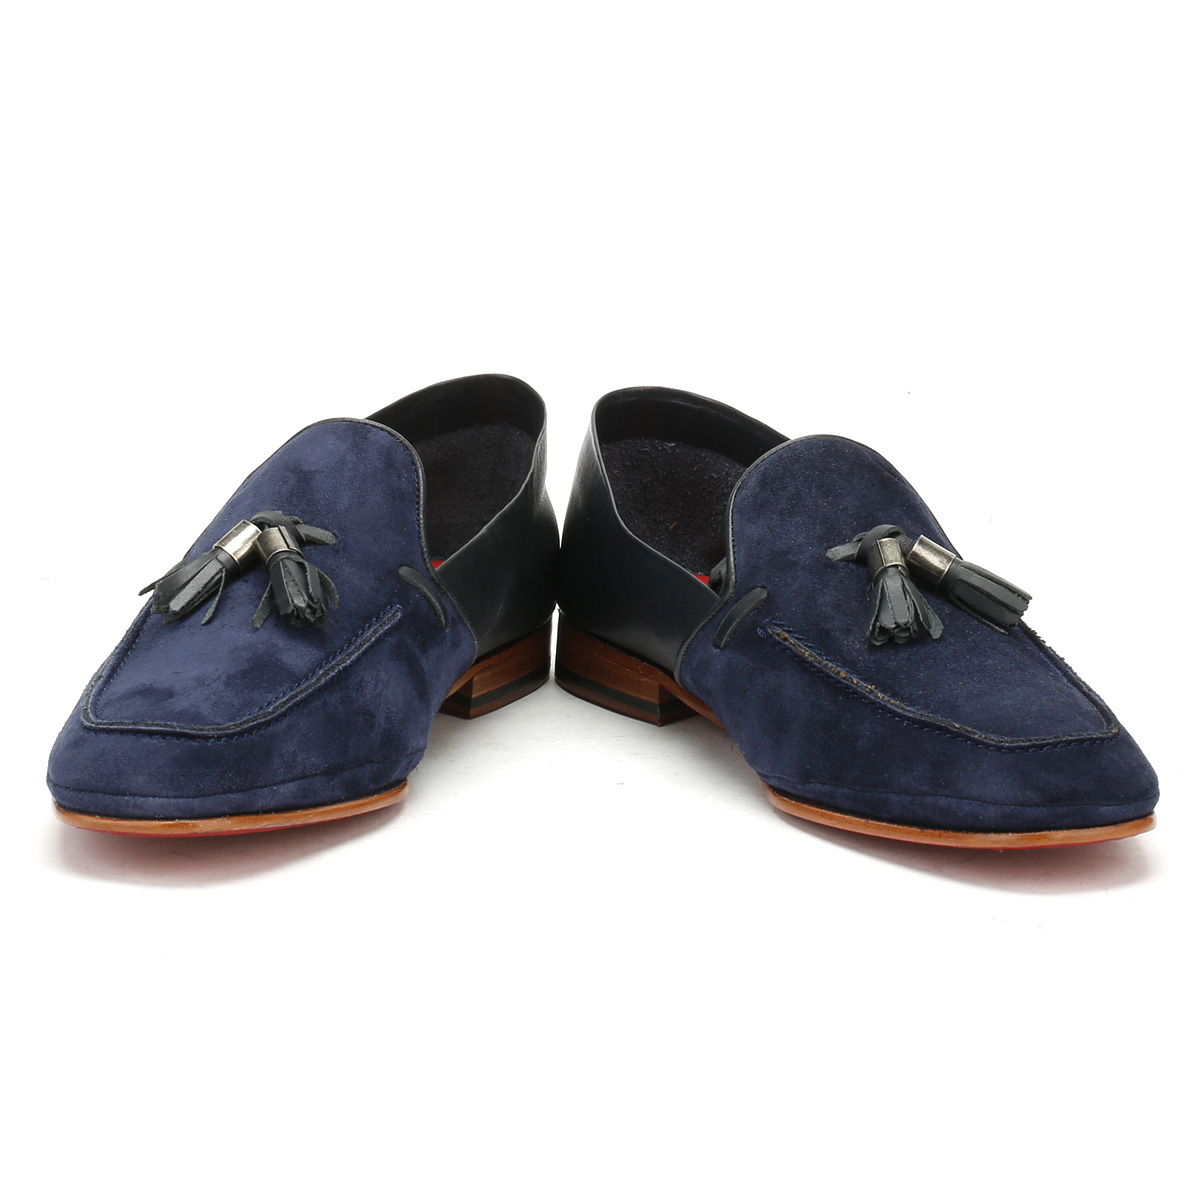 Jeffery West   Herren Mule Bovino Loafers Croste Bovino Mule Dark Blau Martini Moccasins Schuhes 0806e6